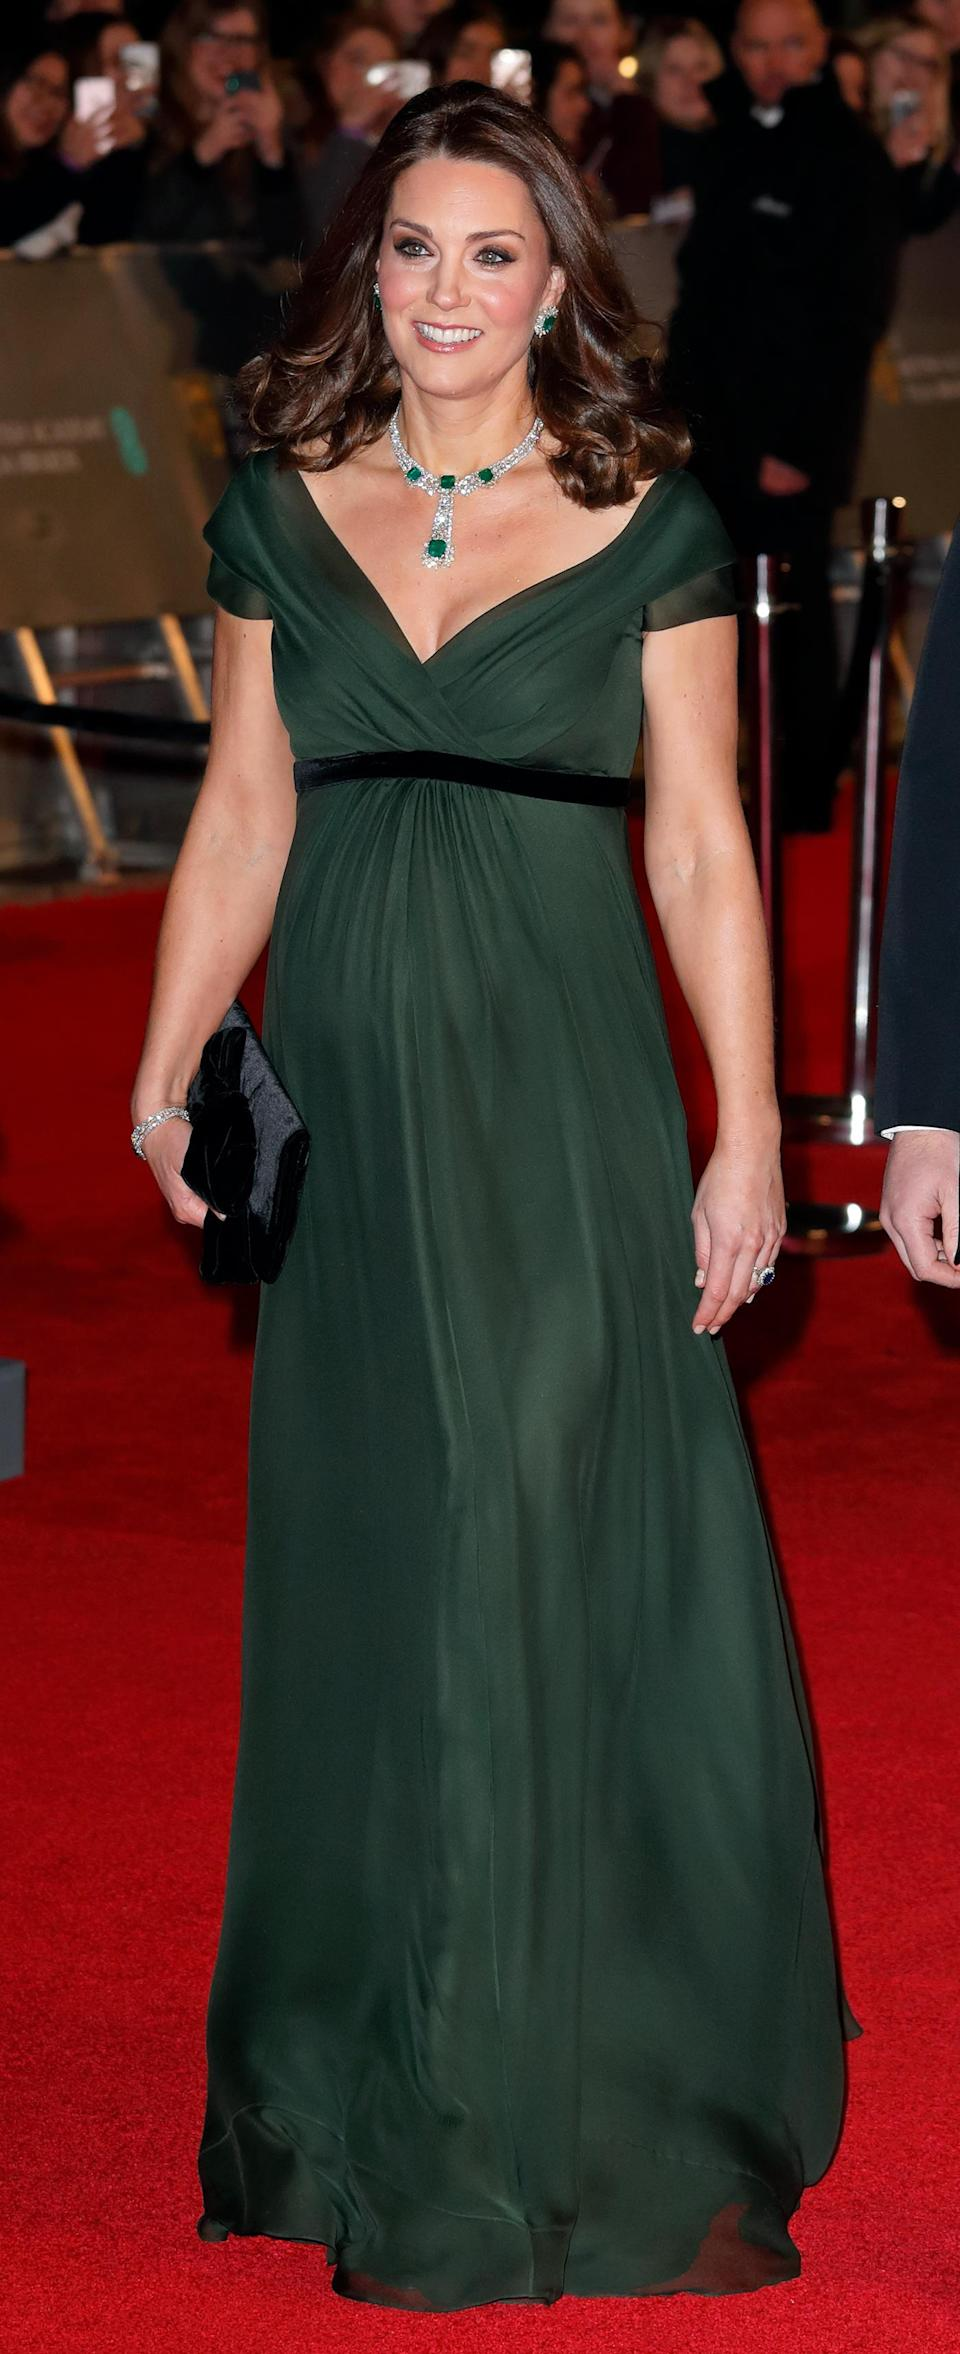 <p><strong>The occassion:</strong> The 2018 BAFTA Awards. <br><strong>The look: </strong>A dark green Jenny Peckham gown with a black belt, paired with a statement emerald necklace and earrings set and black velvet clutch. It was speculated as to whether the Duchess would honour the Time's Up movement by wearing black, but royal protocol forbids her from engaging with political statements. <br>[Photo: Getty] </p>